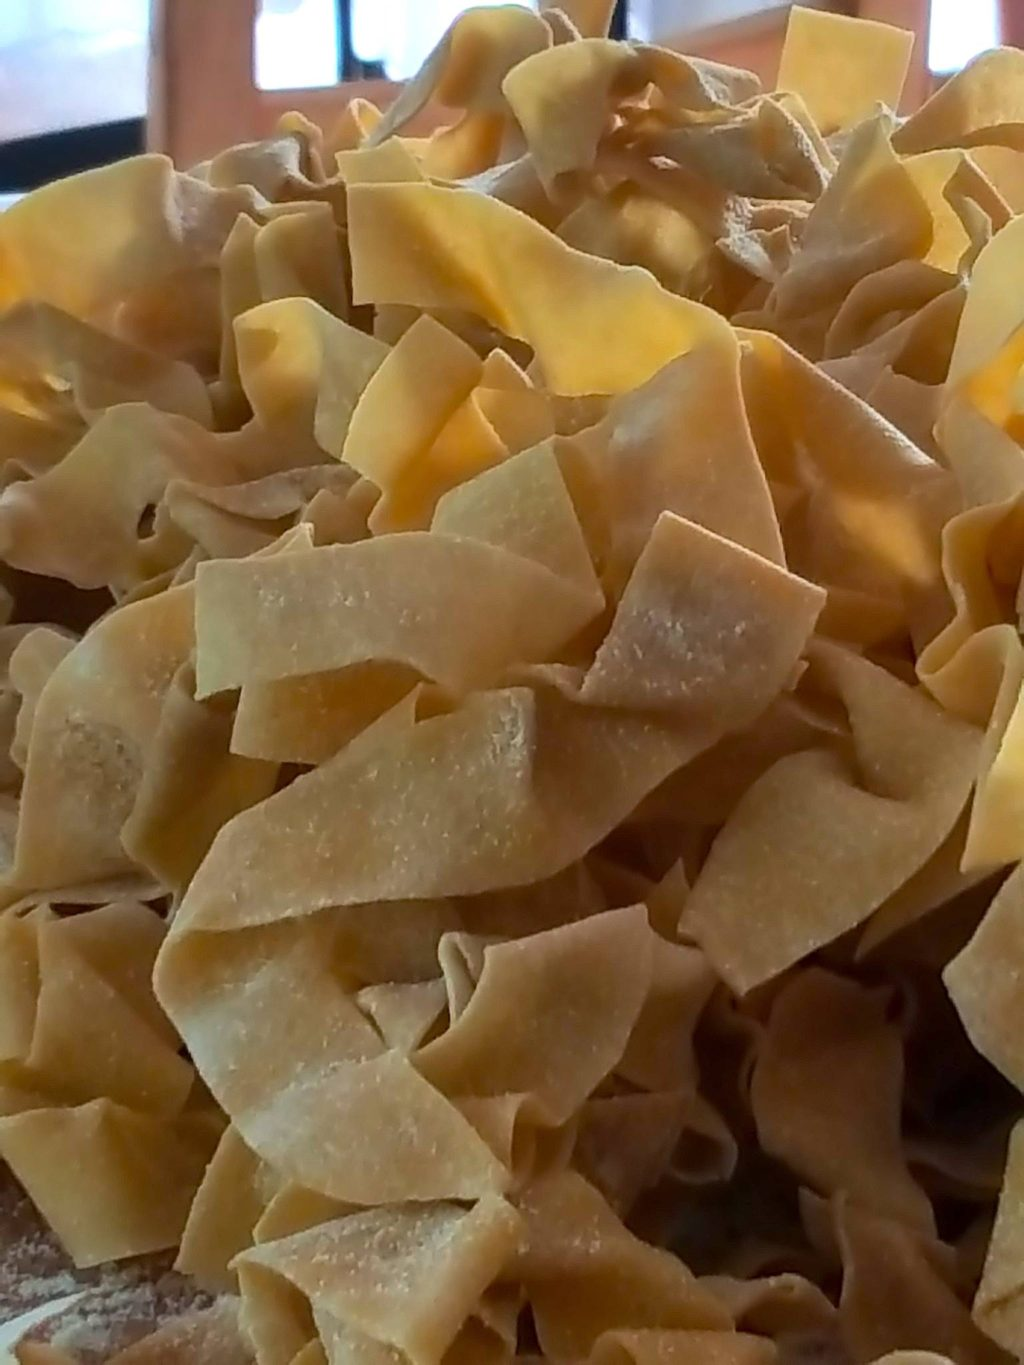 Pappardelle noodles air-drying